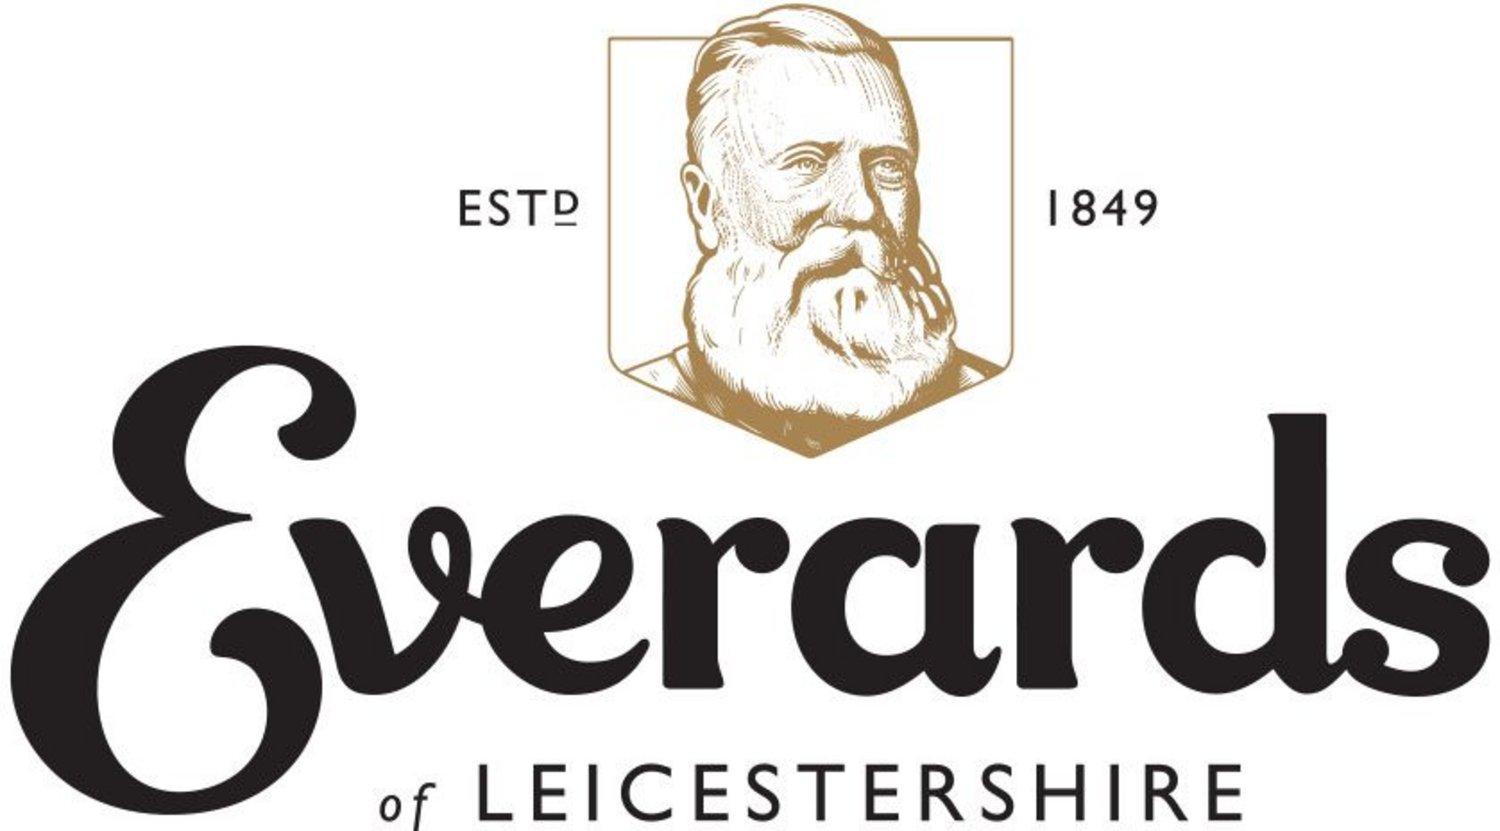 Supported by Everards